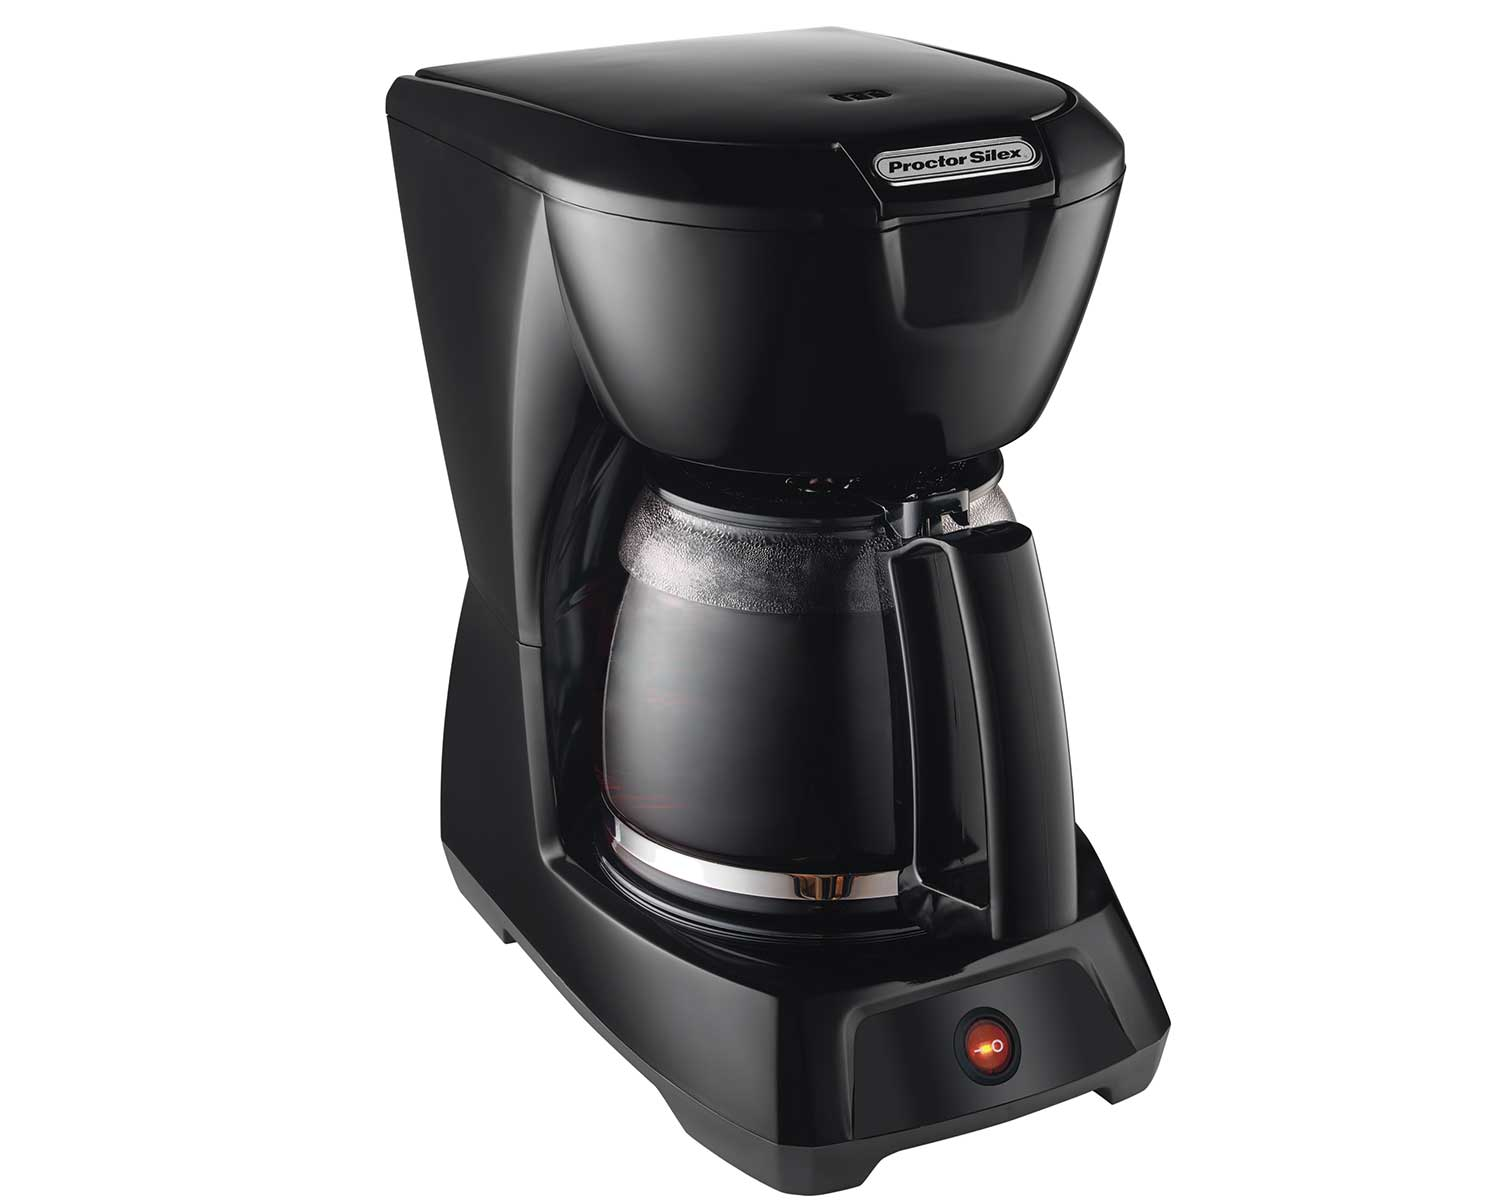 12 Cup Coffee Maker (black)-43602